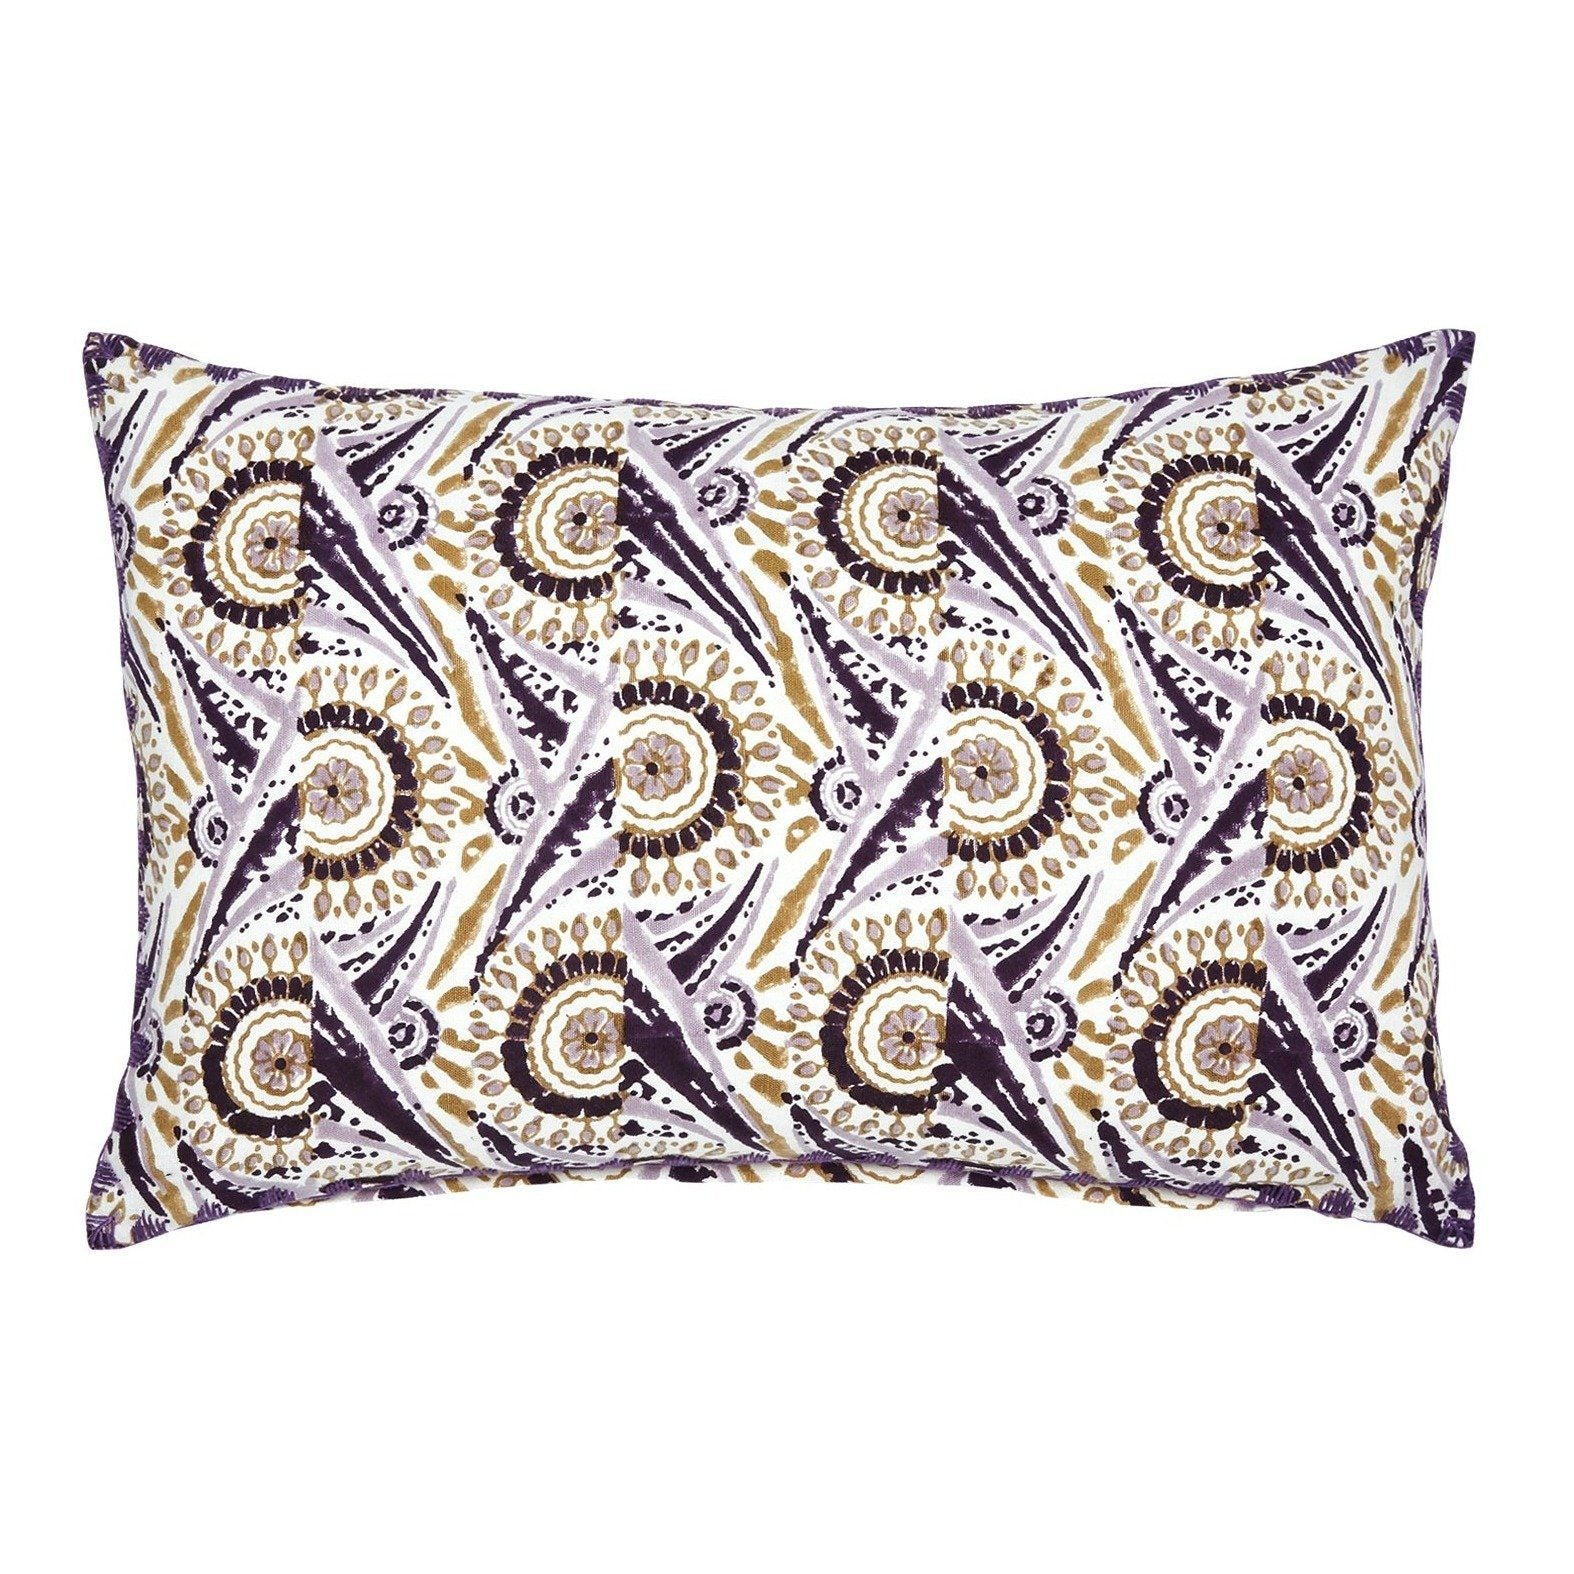 Fig Linens - Tirana Decorative Pillow by John Robshaw